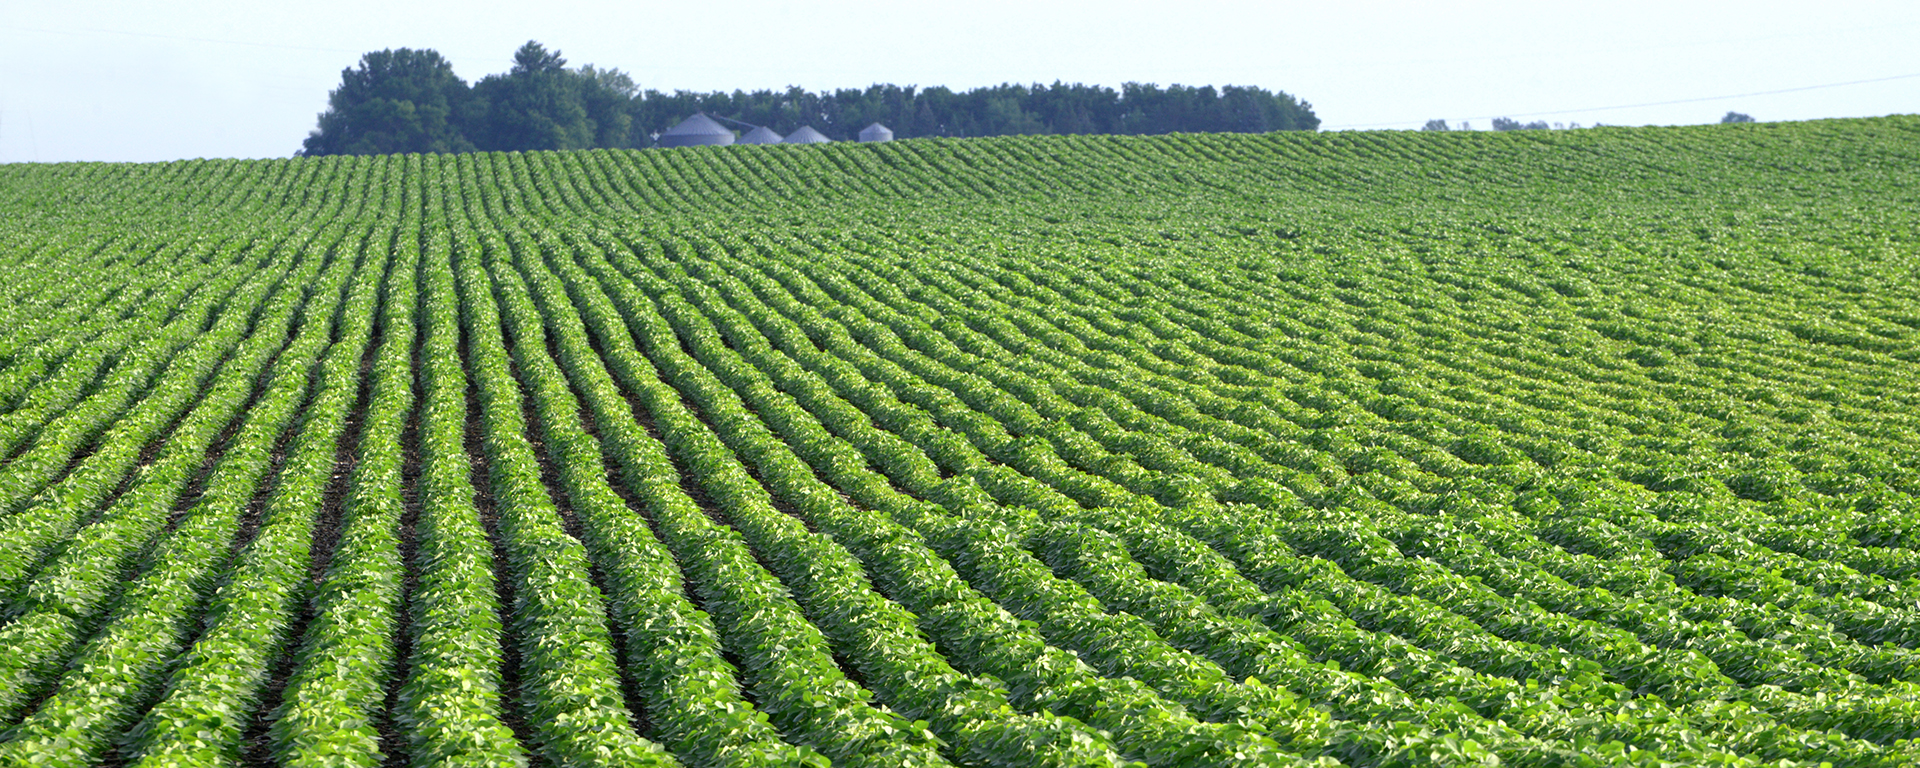 Agriculture_1920x768, Green, agriculture, landscape, crop, crops, soybeans, field, fields, Soybean field, field of soybeans, trees, rows, Farming